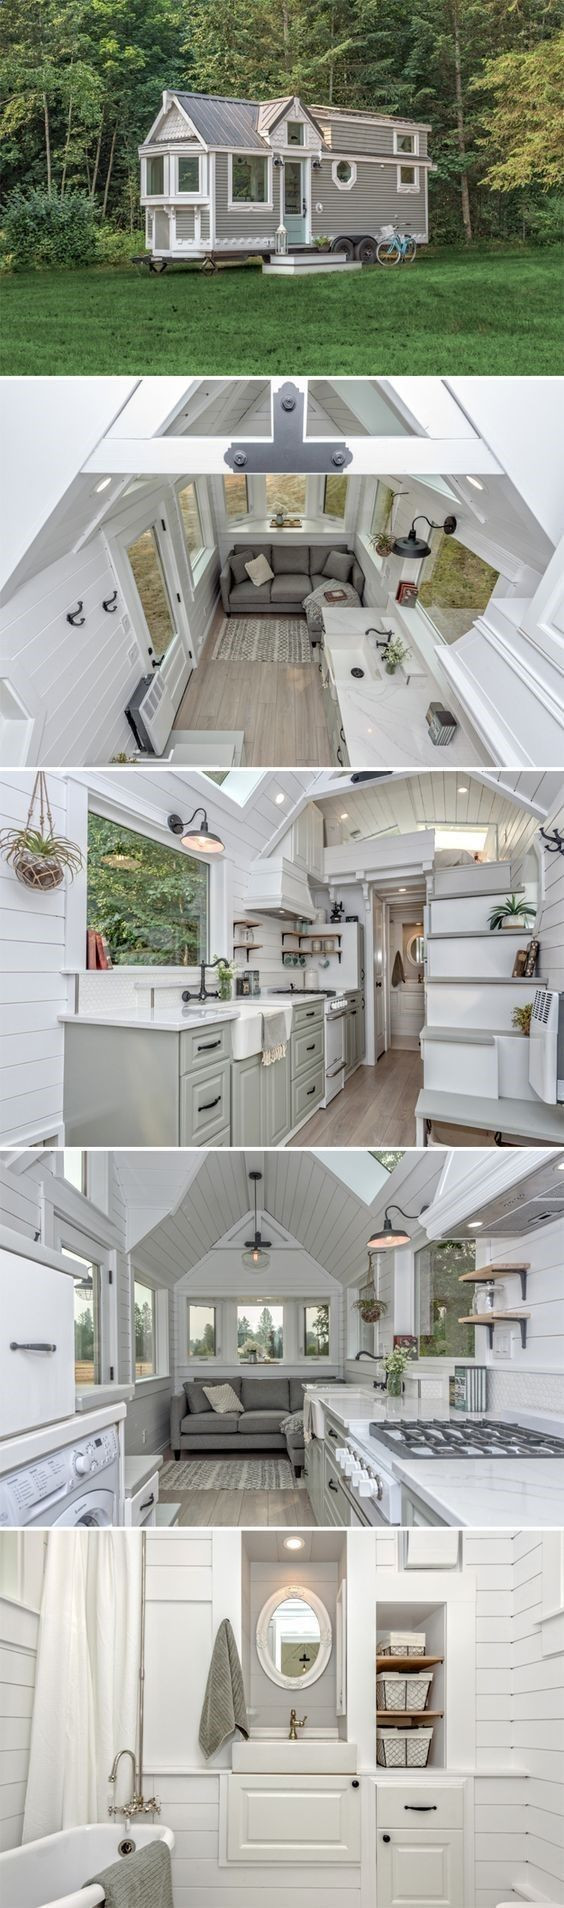 "praters hardwood floors chattanooga tn of 65 best decoracia""n y organizacia""n images on pinterest for the home throughout shed diy shed plans the heritage is the debut tiny house built by oliver stankiewicz and cera bollo at summit tiny homes located in armstrong"